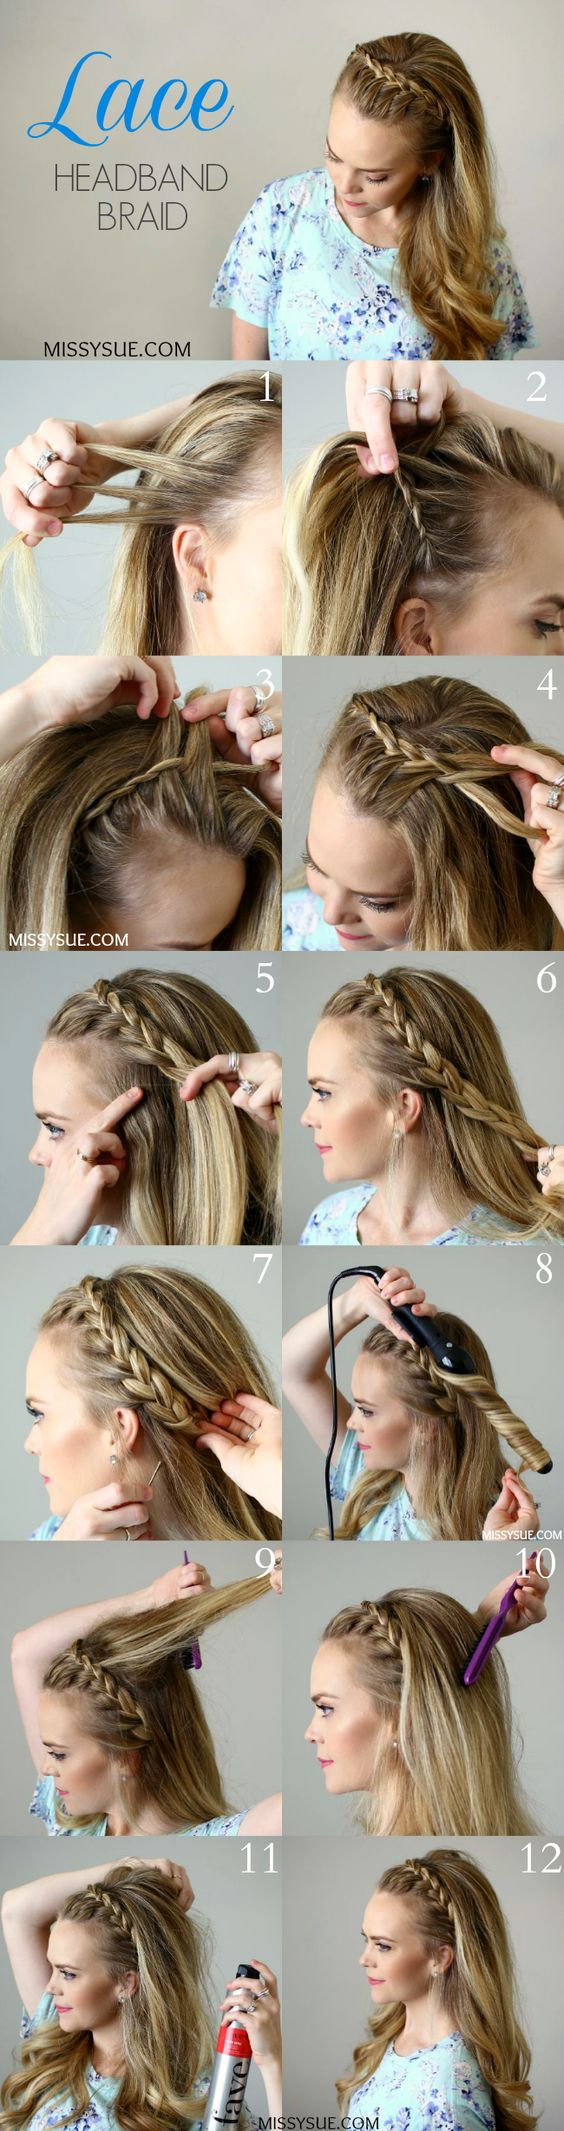 Lace Headband Braid Separate hair into two parts: first two inches at forehead from ear to ear and put everything else in a ponytail. Basically braid across the crown, but only add hair from the front. Easy peasy.: